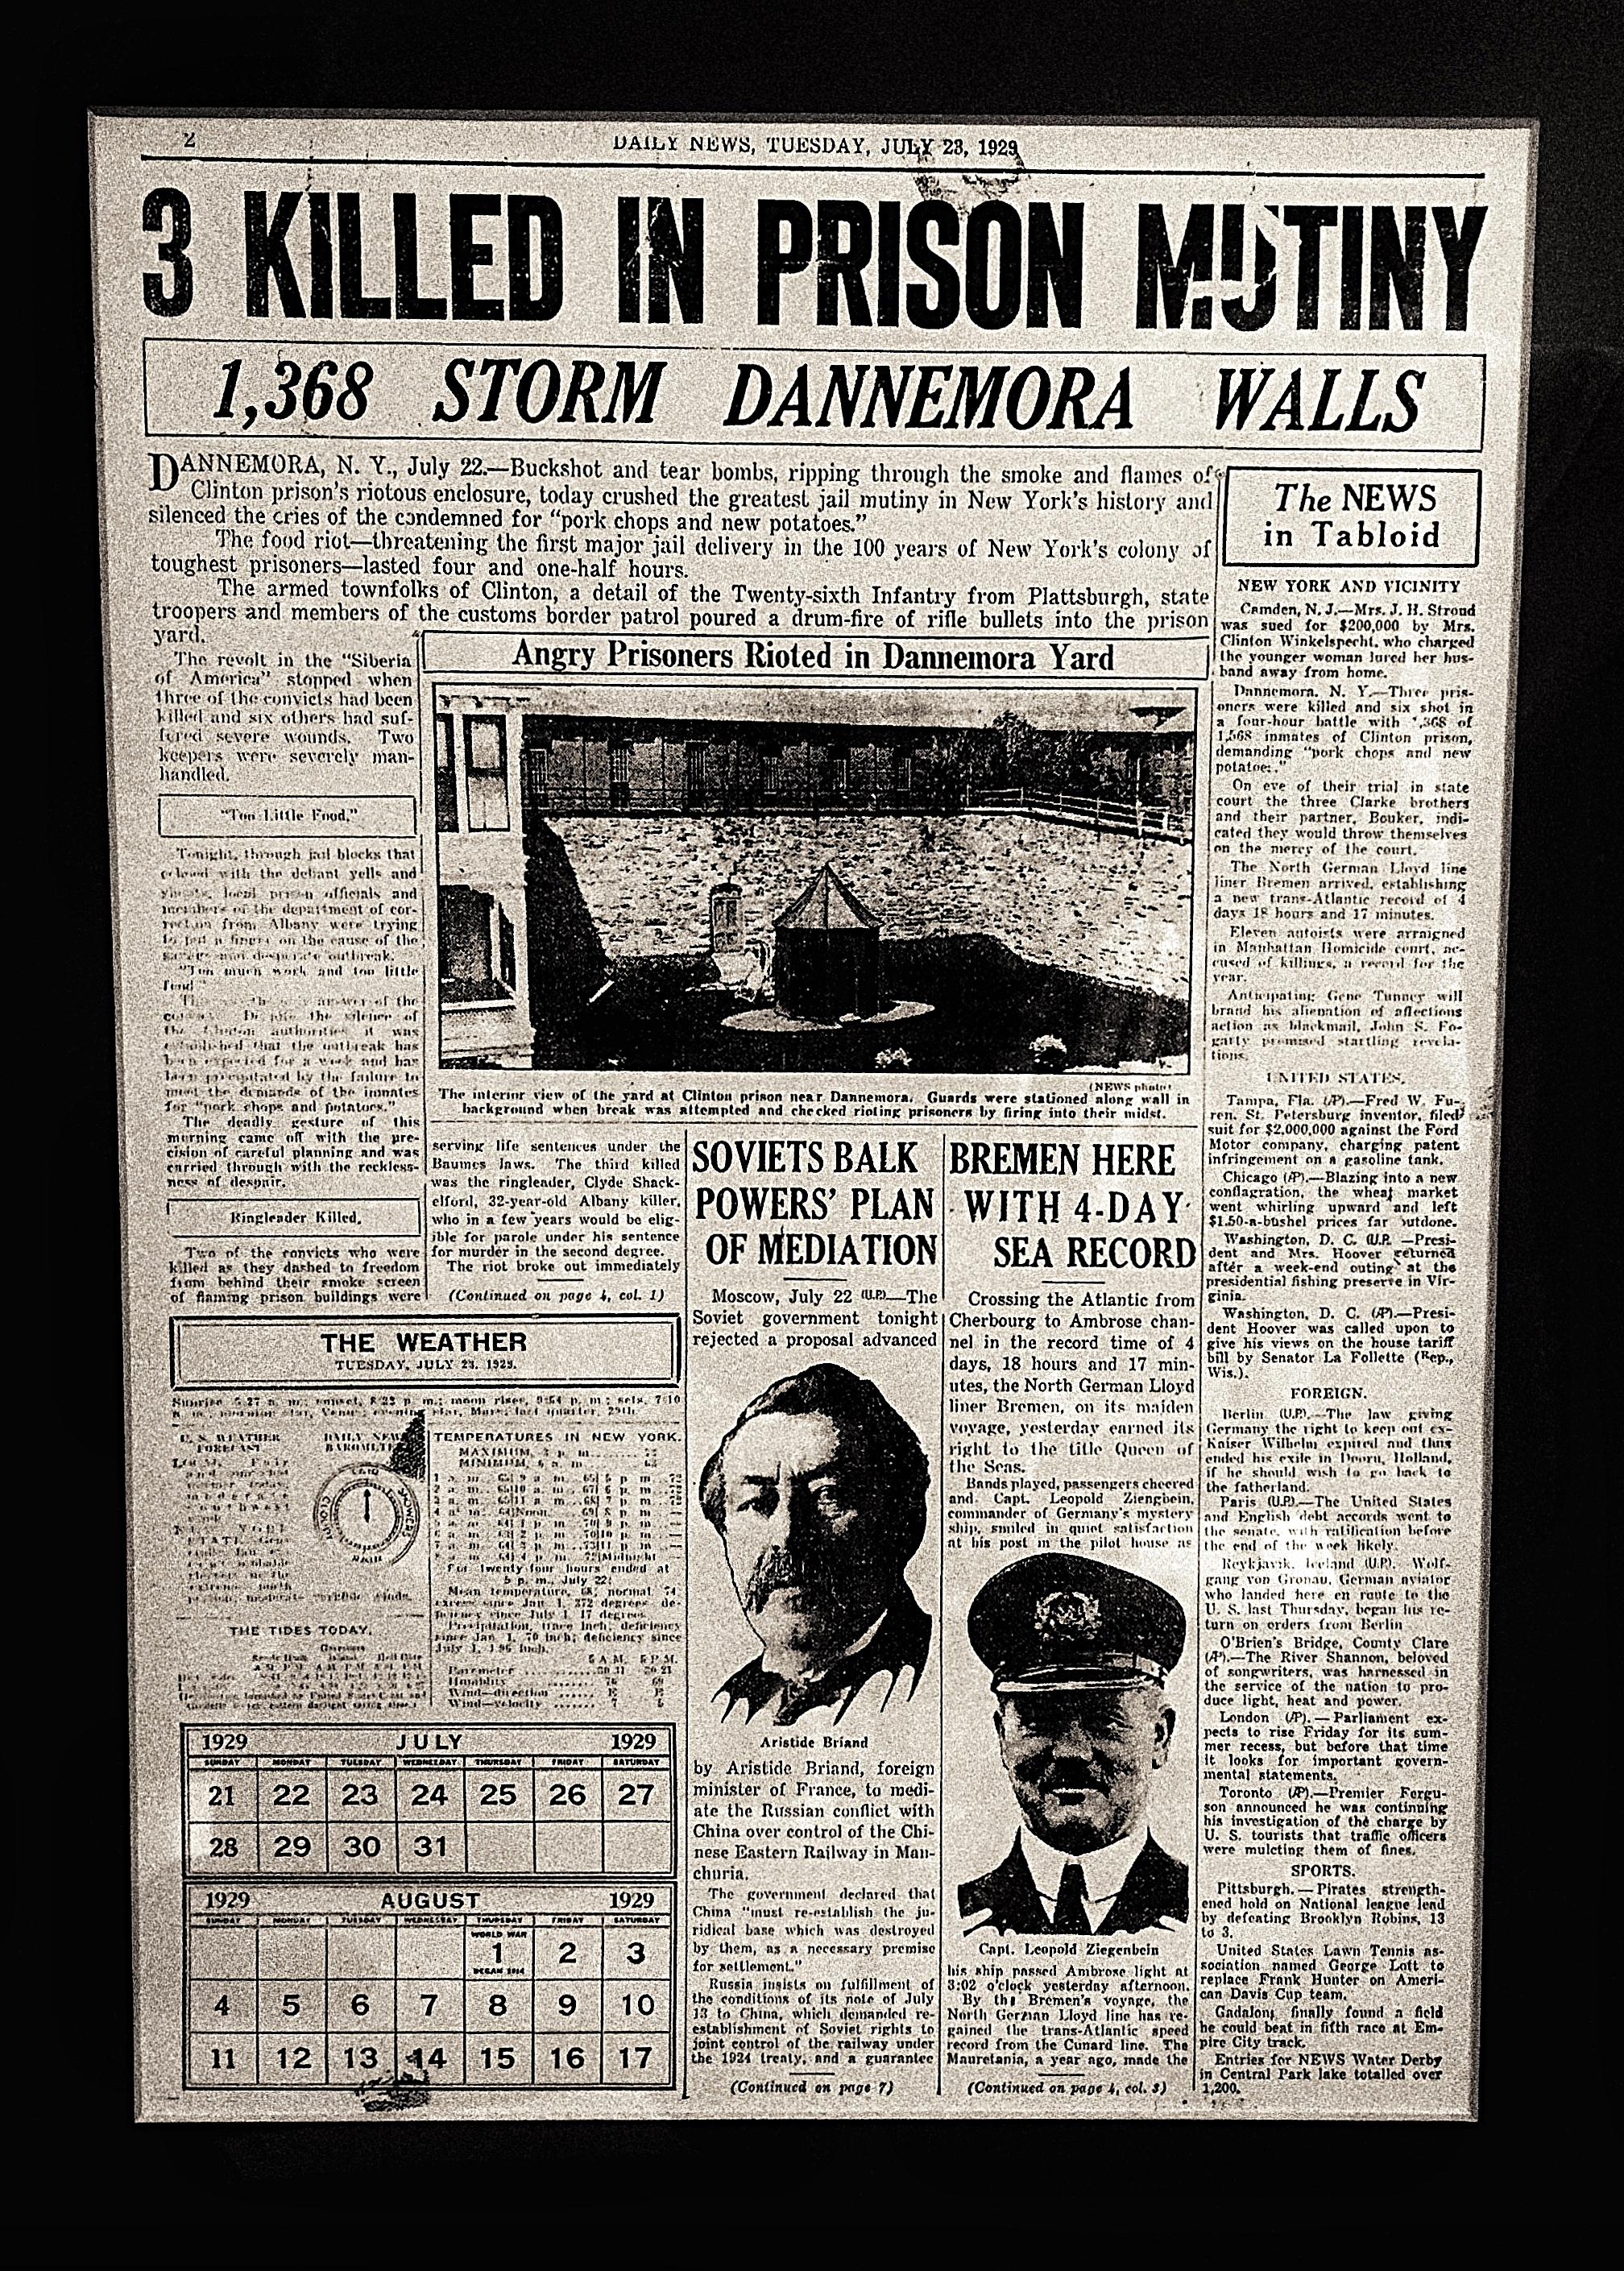 """Page from the New York Daily News July 23, 1929, which reported on a prisoner mutiny in Dannemora. Image courtesy of historian Walter """"Pete"""" Light for the Museum at the Dannemora Free Library. (Chelsia Rose Marcius/June 17, 2015)"""